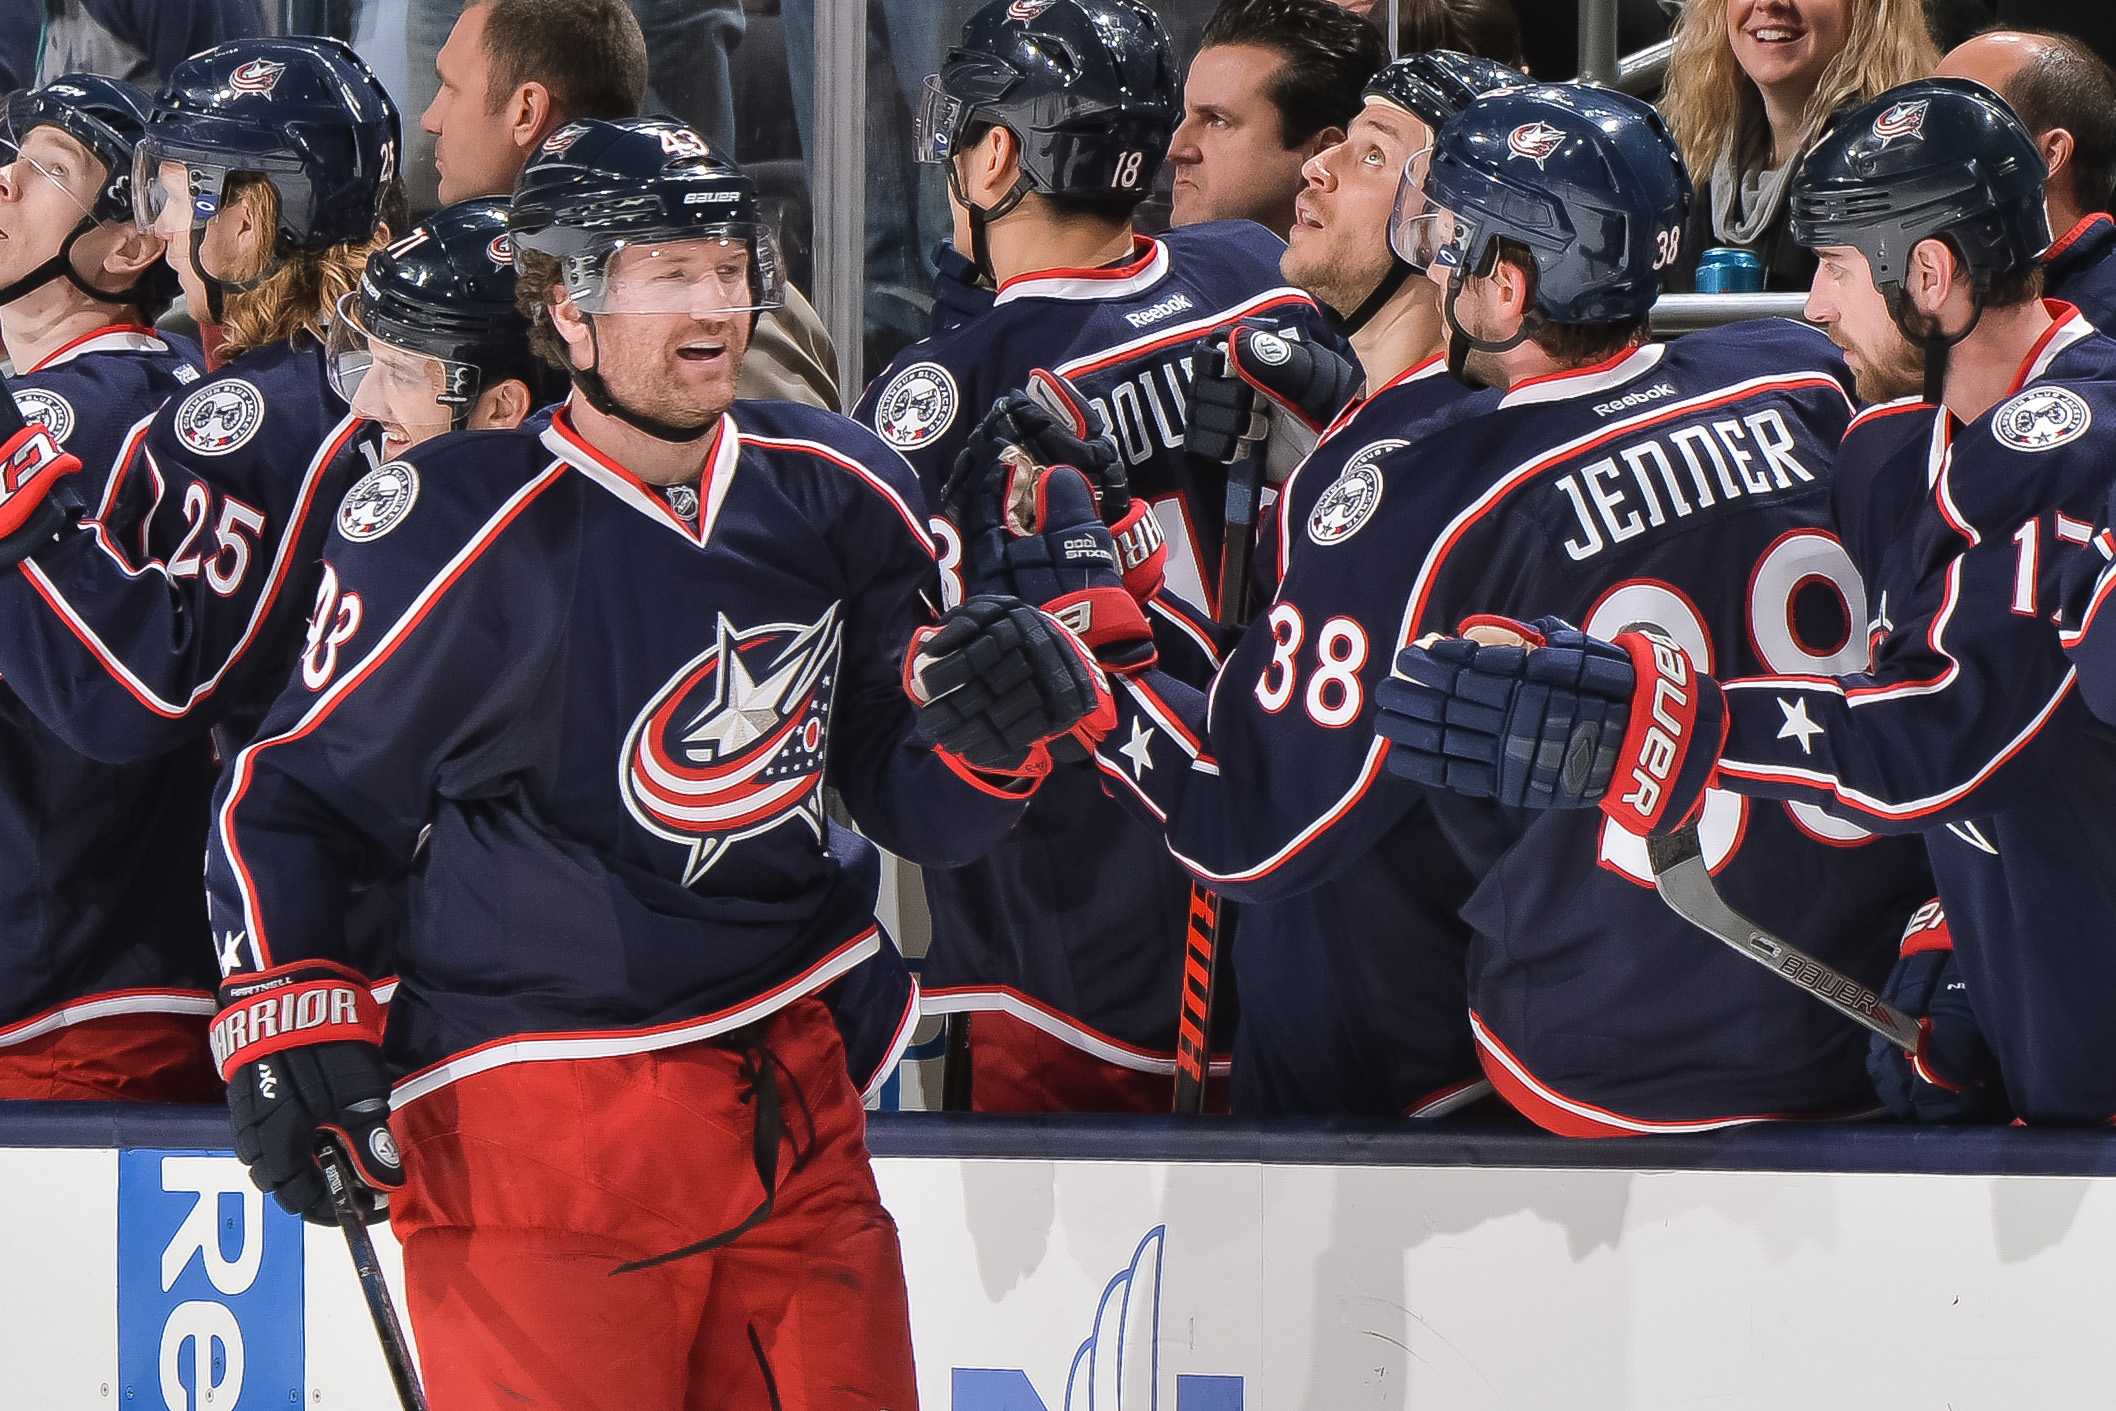 Columbus Blue Jackets: Former Players to Watch in 2017-18